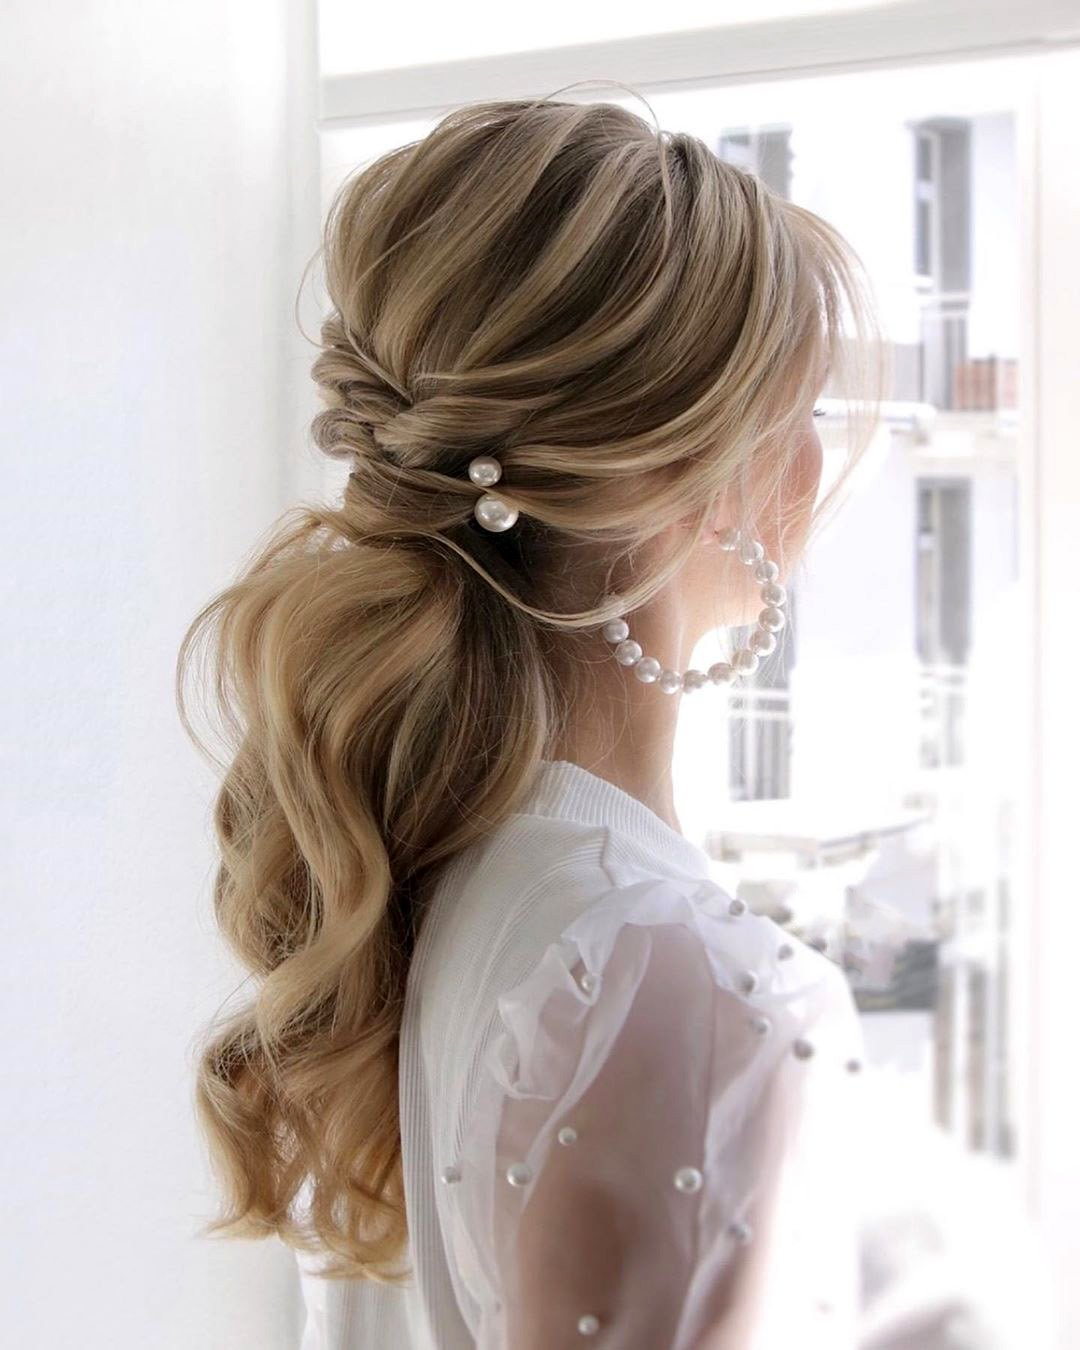 pony tail hairstyles elegant airy with pearls juliafratichelli.bridalstylist